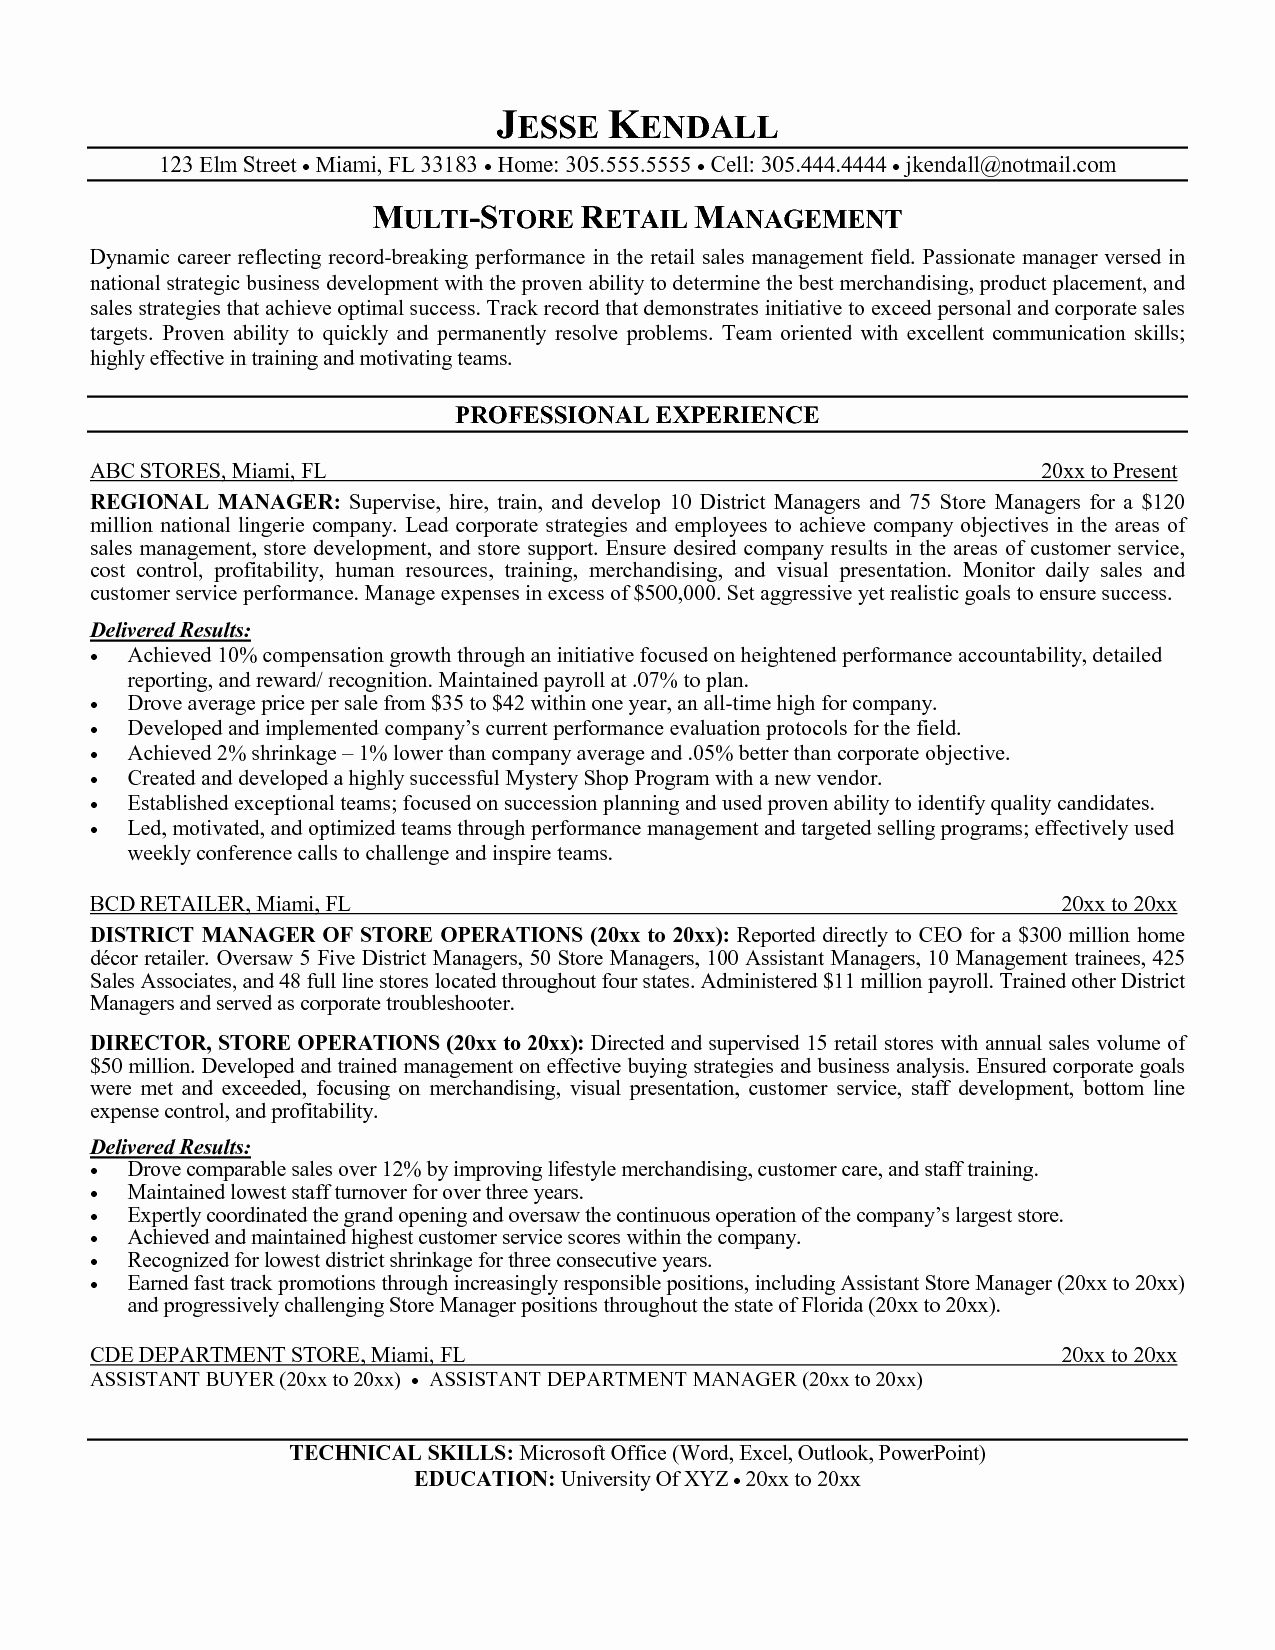 Store Manager Job Description Resume Inspirational Retail Manager Resume Objective Printable Planner Templ In 2020 Job Resume Examples Manager Resume Resume Examples